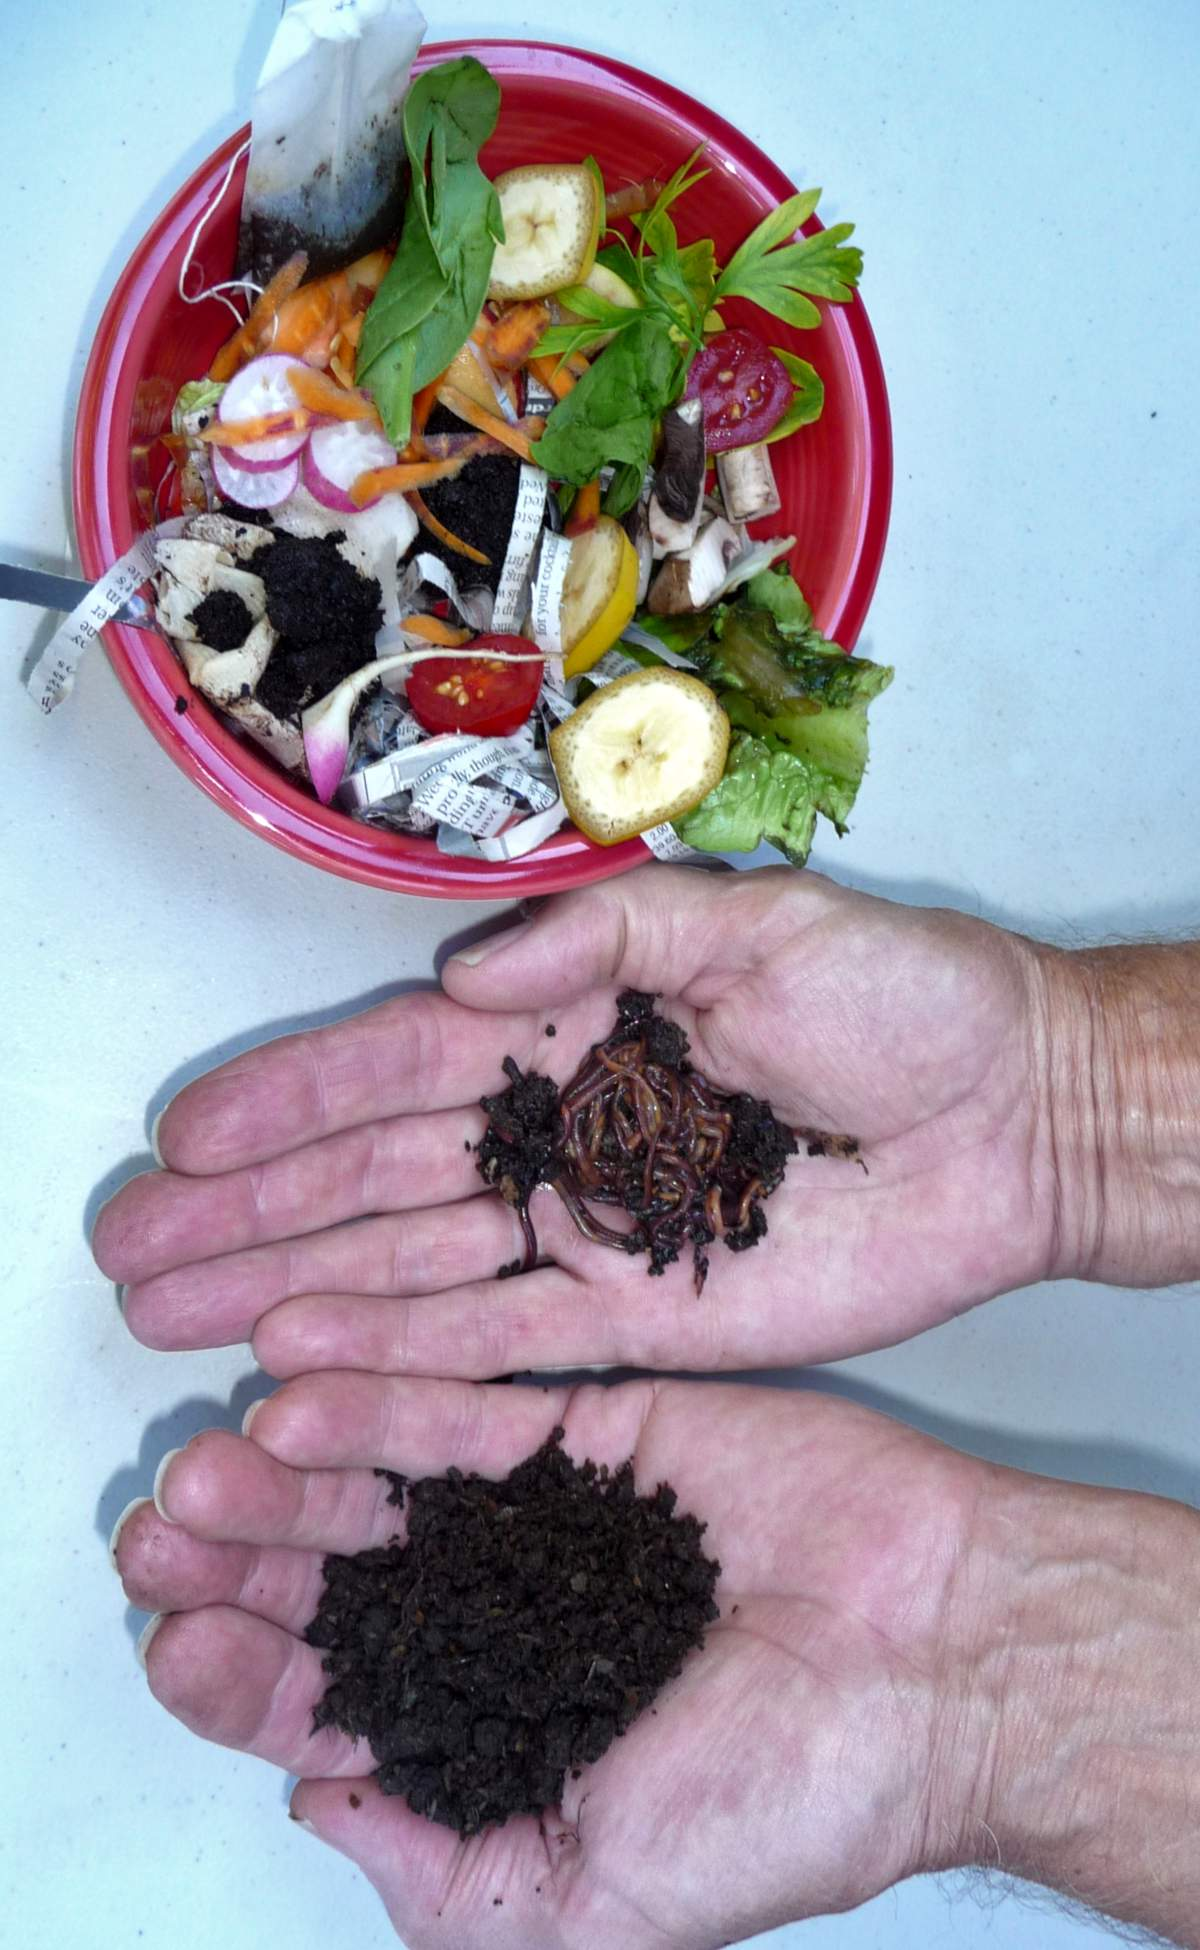 Kitchen waste converted to compost in an appartment composter